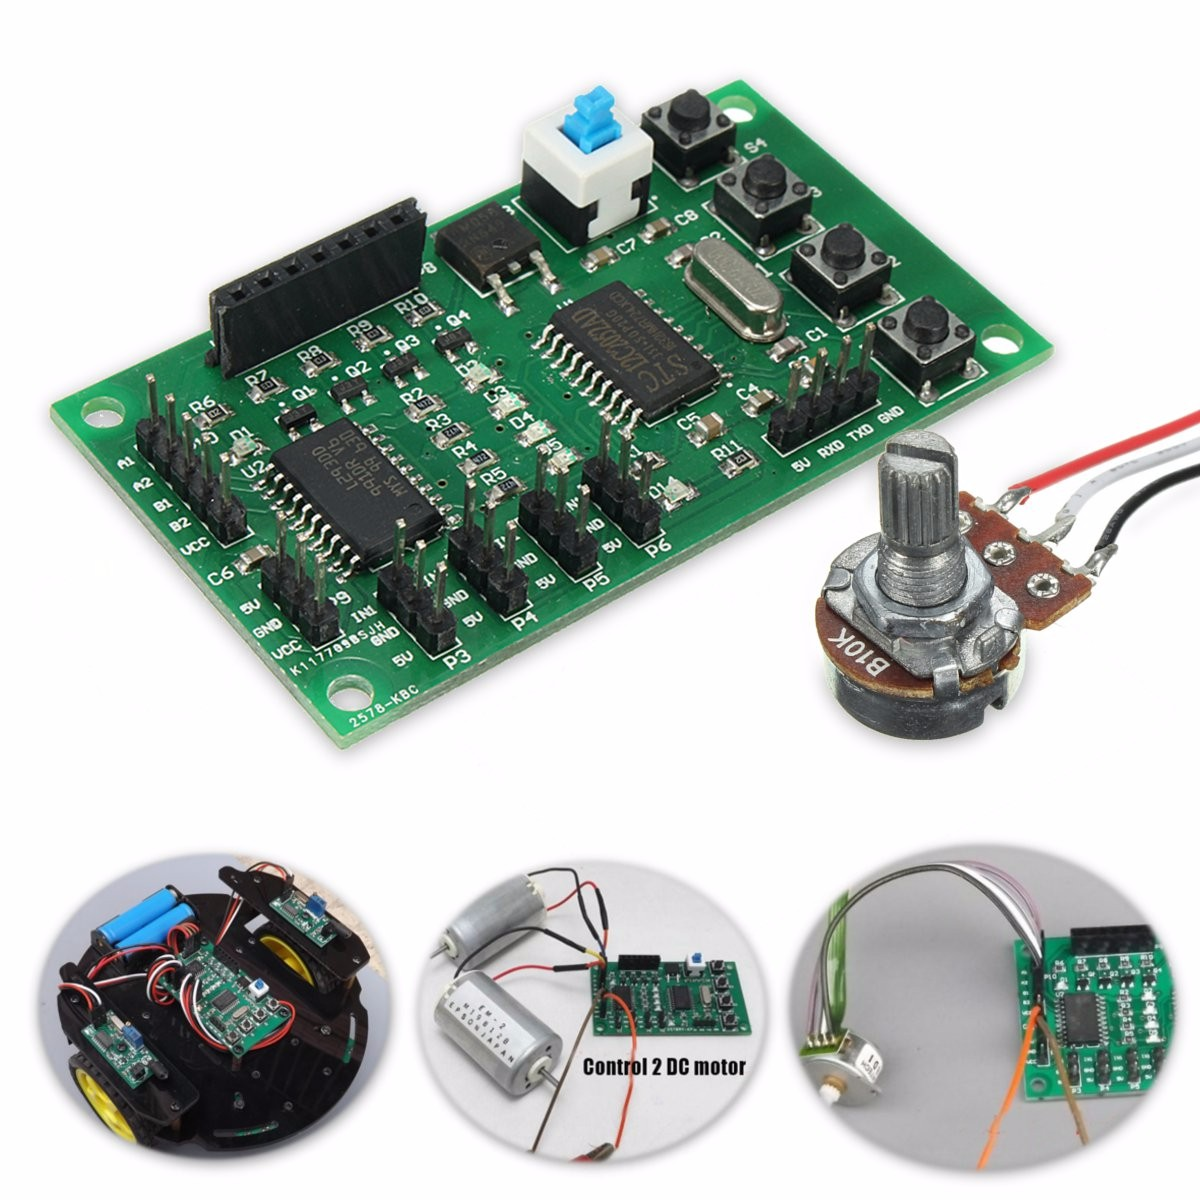 Programmable 2 4 Phase 5 Wire Stepper Motor Driver Control Board A B C Logic Diagram For Robot